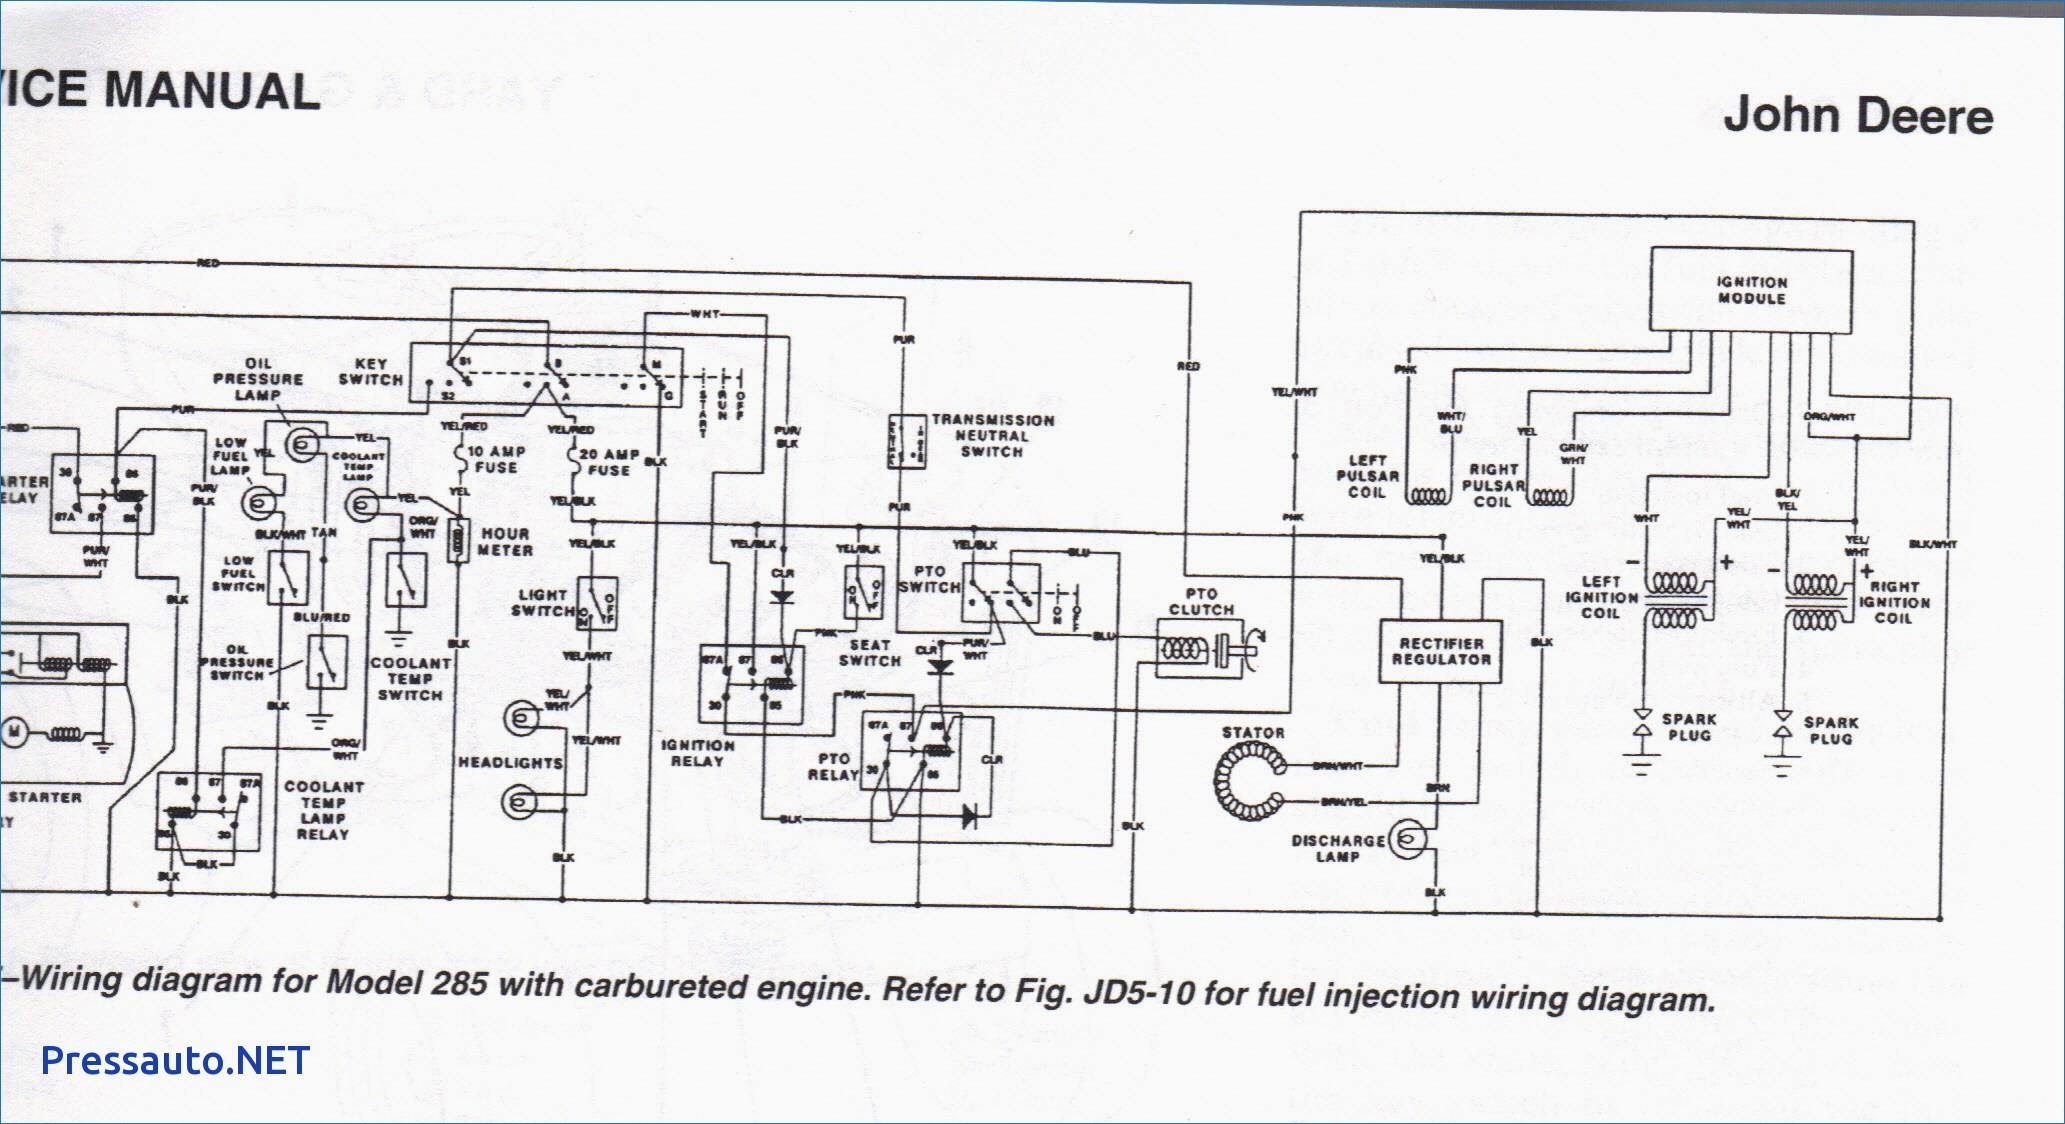 John Deere Lt155 Steering Diagram